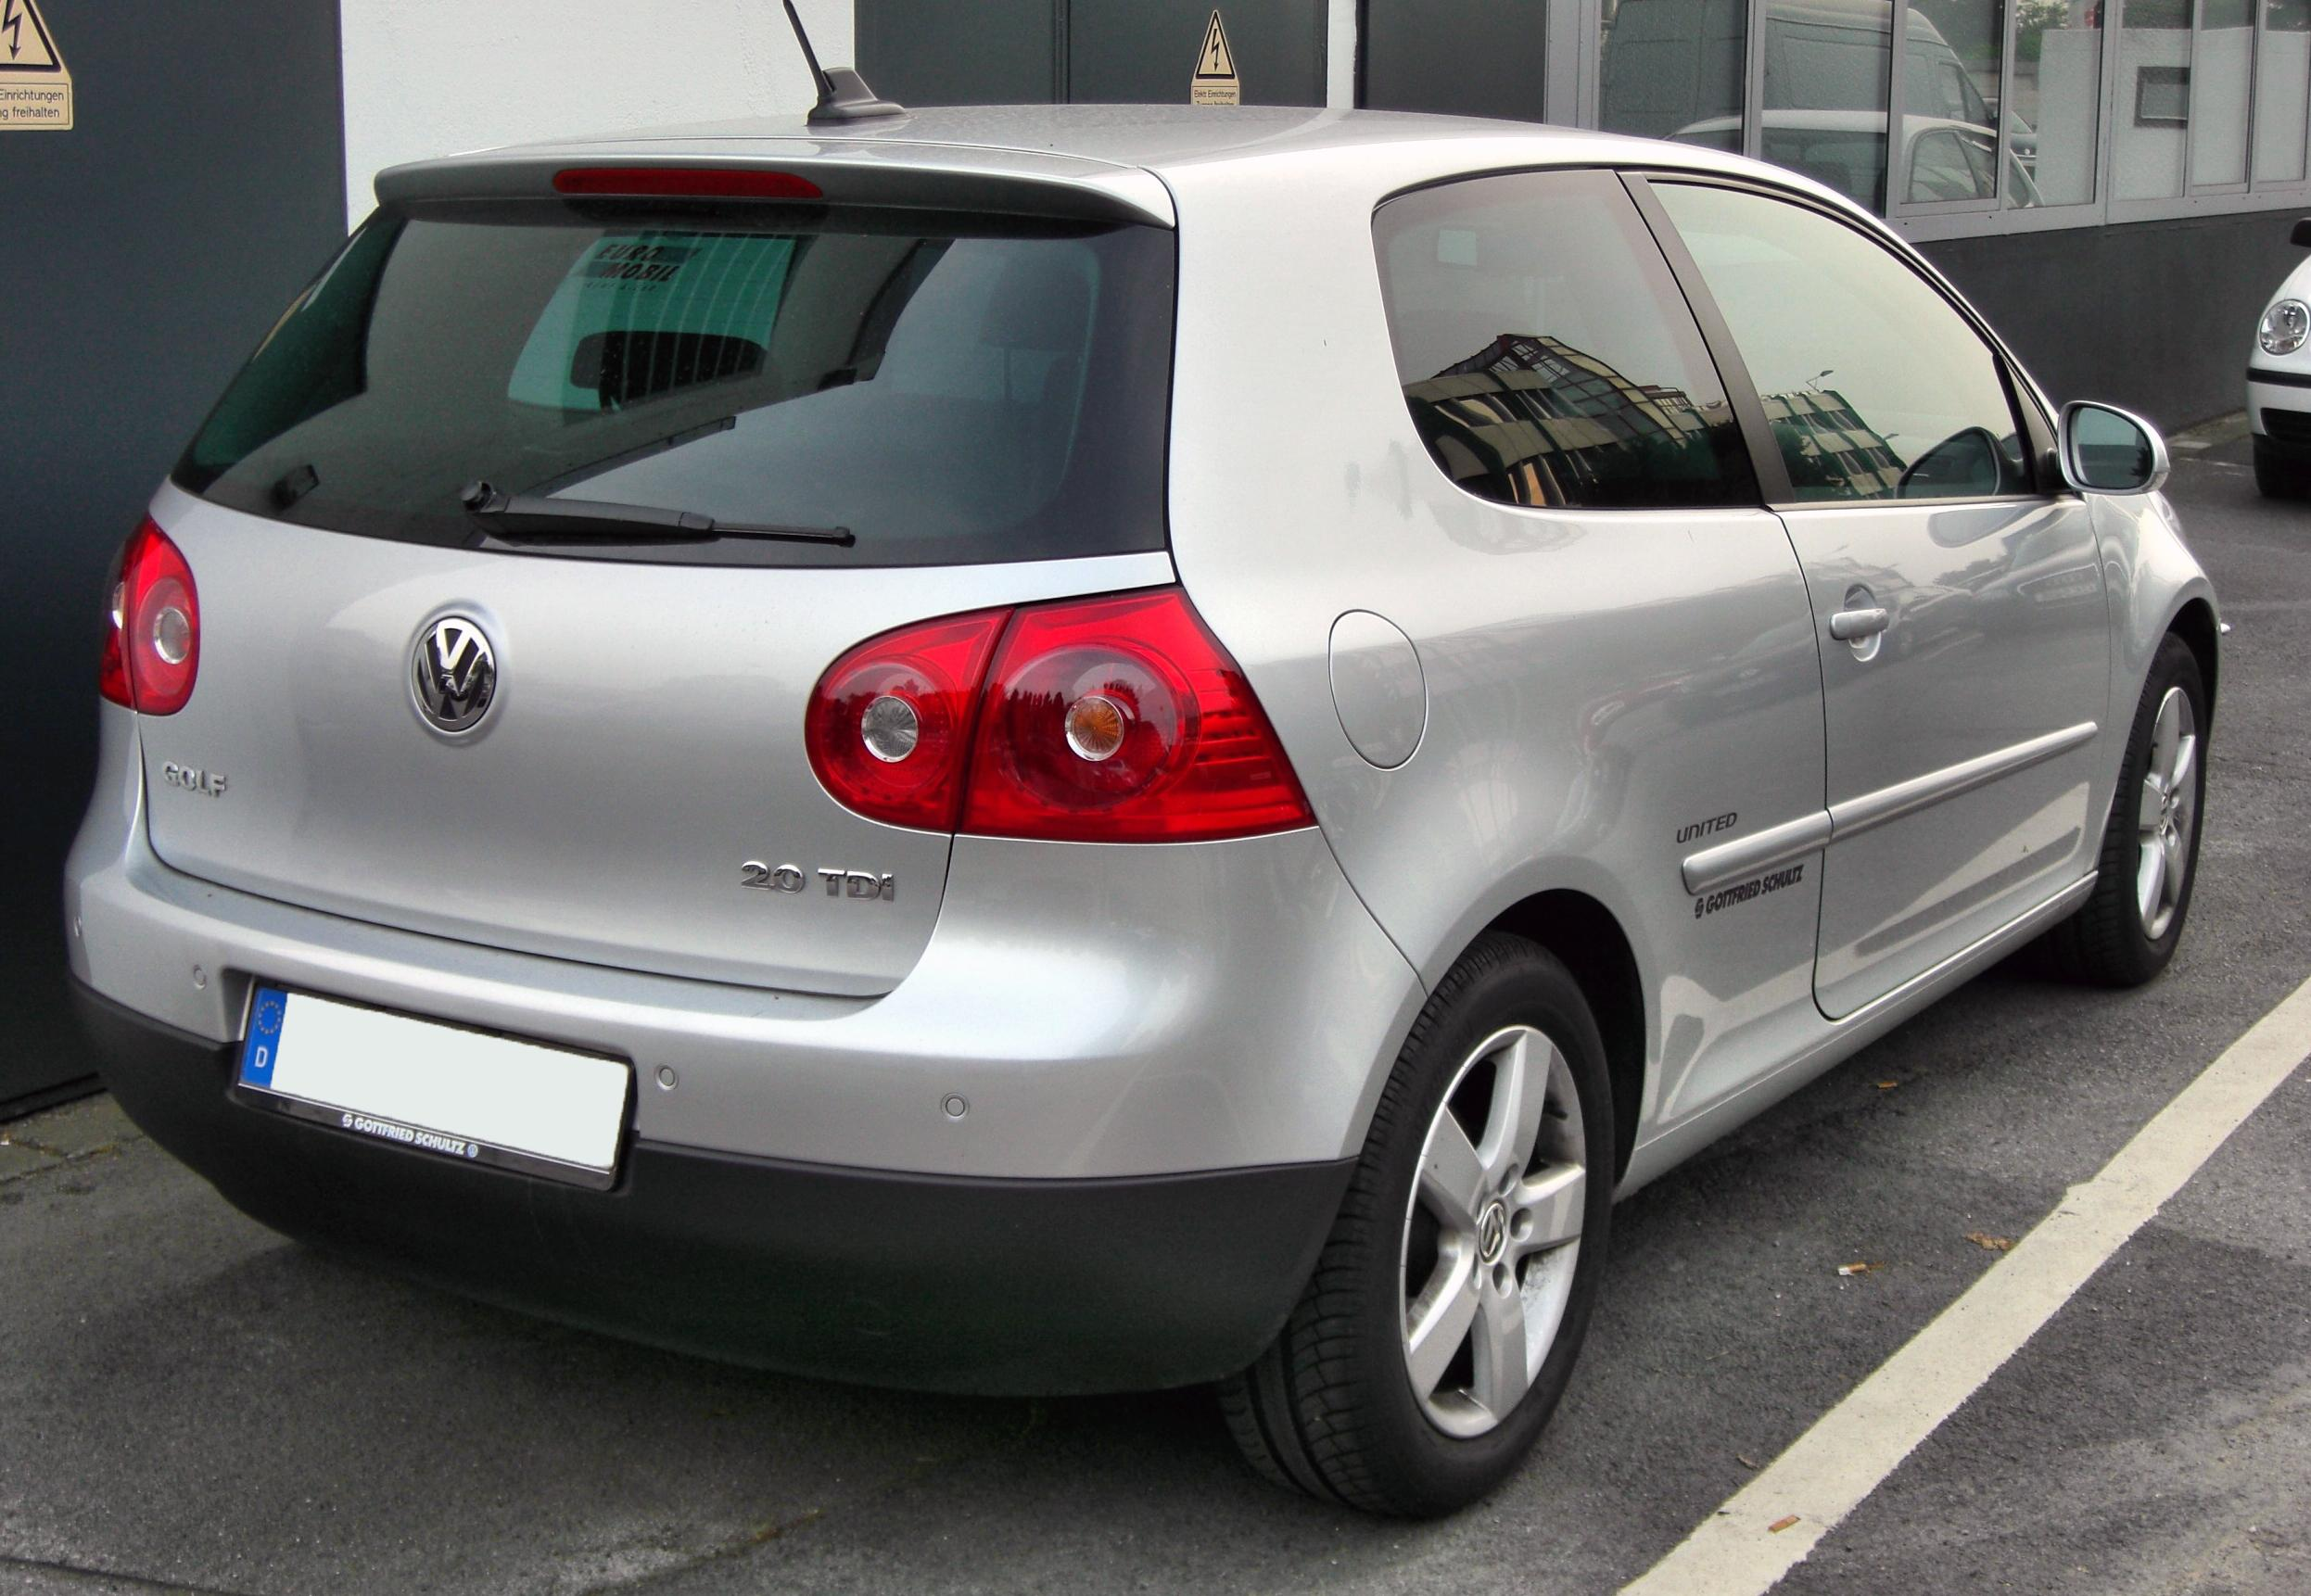 plik vw golf v 20090809 rear jpg wikipedia wolna encyklopedia. Black Bedroom Furniture Sets. Home Design Ideas